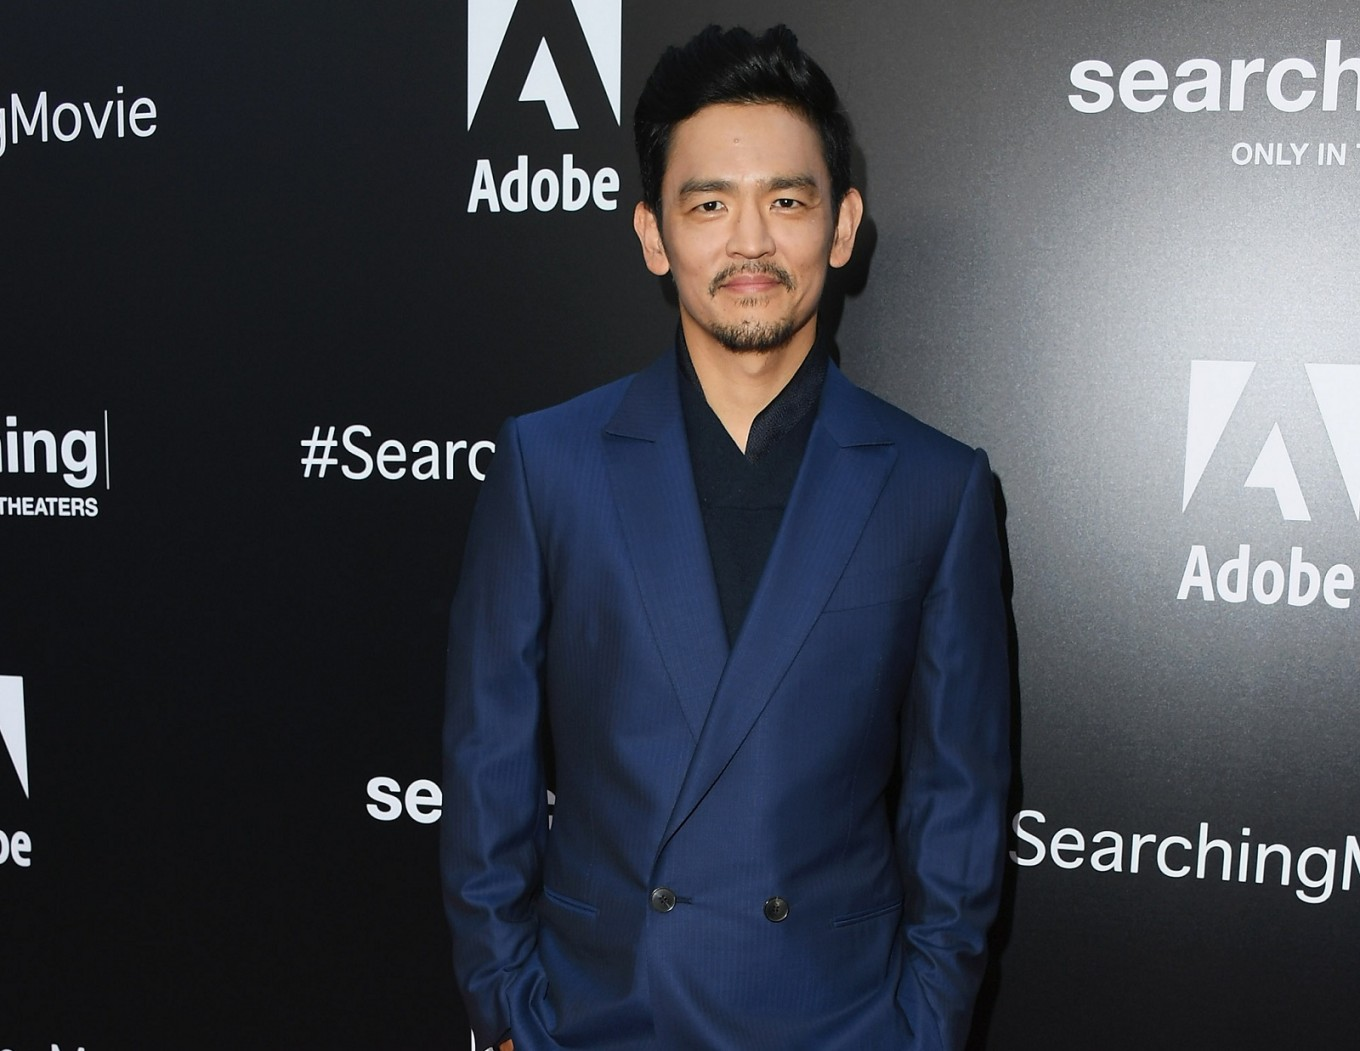 John Cho is the No. 1 Asian-American actor in Hollywood